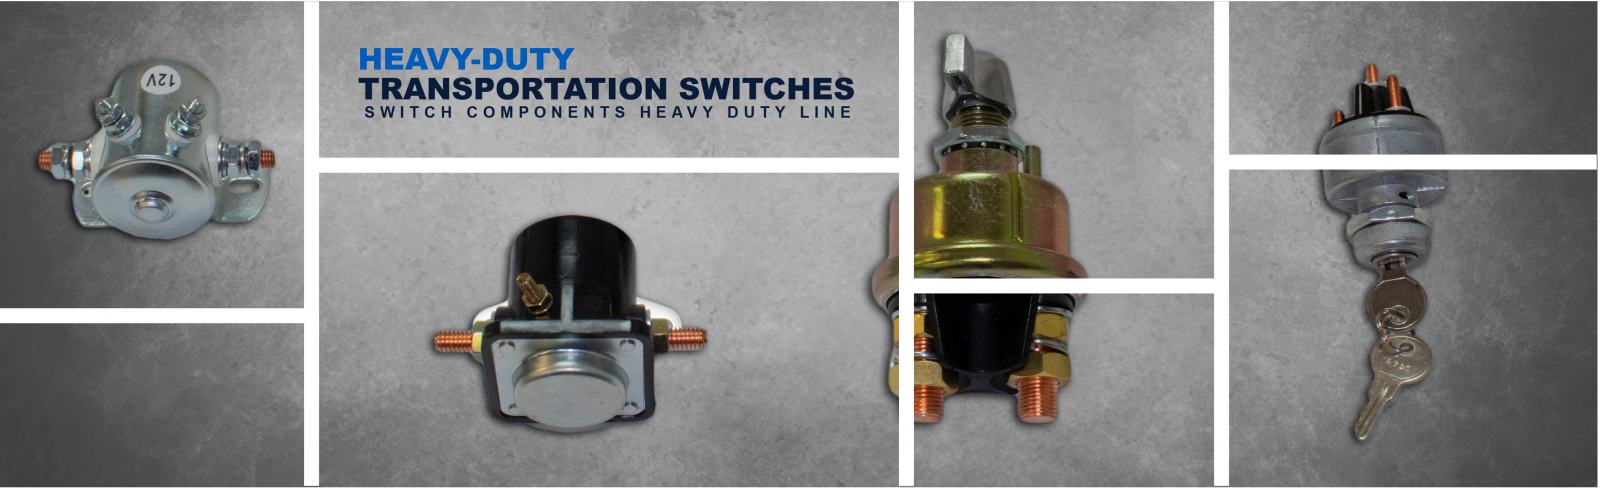 Switch Components introduces its new Heavy-Duty switch line for the vehicle industry, that includes Battery Disconnects, Ignition switches and Solenoids. Our Heavy-Duty components are designed, manufactured and tested for maximum durability and reliability, even when used in the most demanding applications.    Switch Components offers Battery Disconnects designed to cut-off electrical power and help protect against electrical fires and theft when equipment is not in use, provide a reliable shutdown of power during maintenance, and prevent parasitic loads from draining the battery during inactivity. They are available with steel or diecast cases and O-rings feature in the operating shaft for additional moisture and dirt protection.  Ignition switches can be used in a variety of transportation and industrial applications ranging from run/start ignition to single-point control for lights and accessories. Switch Components offers universal components that easily replaces any other type of ignition key switch with similar mounting dimensions. Ask us if you need specialized ignition starter switch for trucks, marine, farm tractors, forklifts, excavators, snowmobiles, golf carts or lawn mowers.  Our mid current rated Solenoids are offered in continuous or intermittent duty cycles, different groundings and materials to match your application.